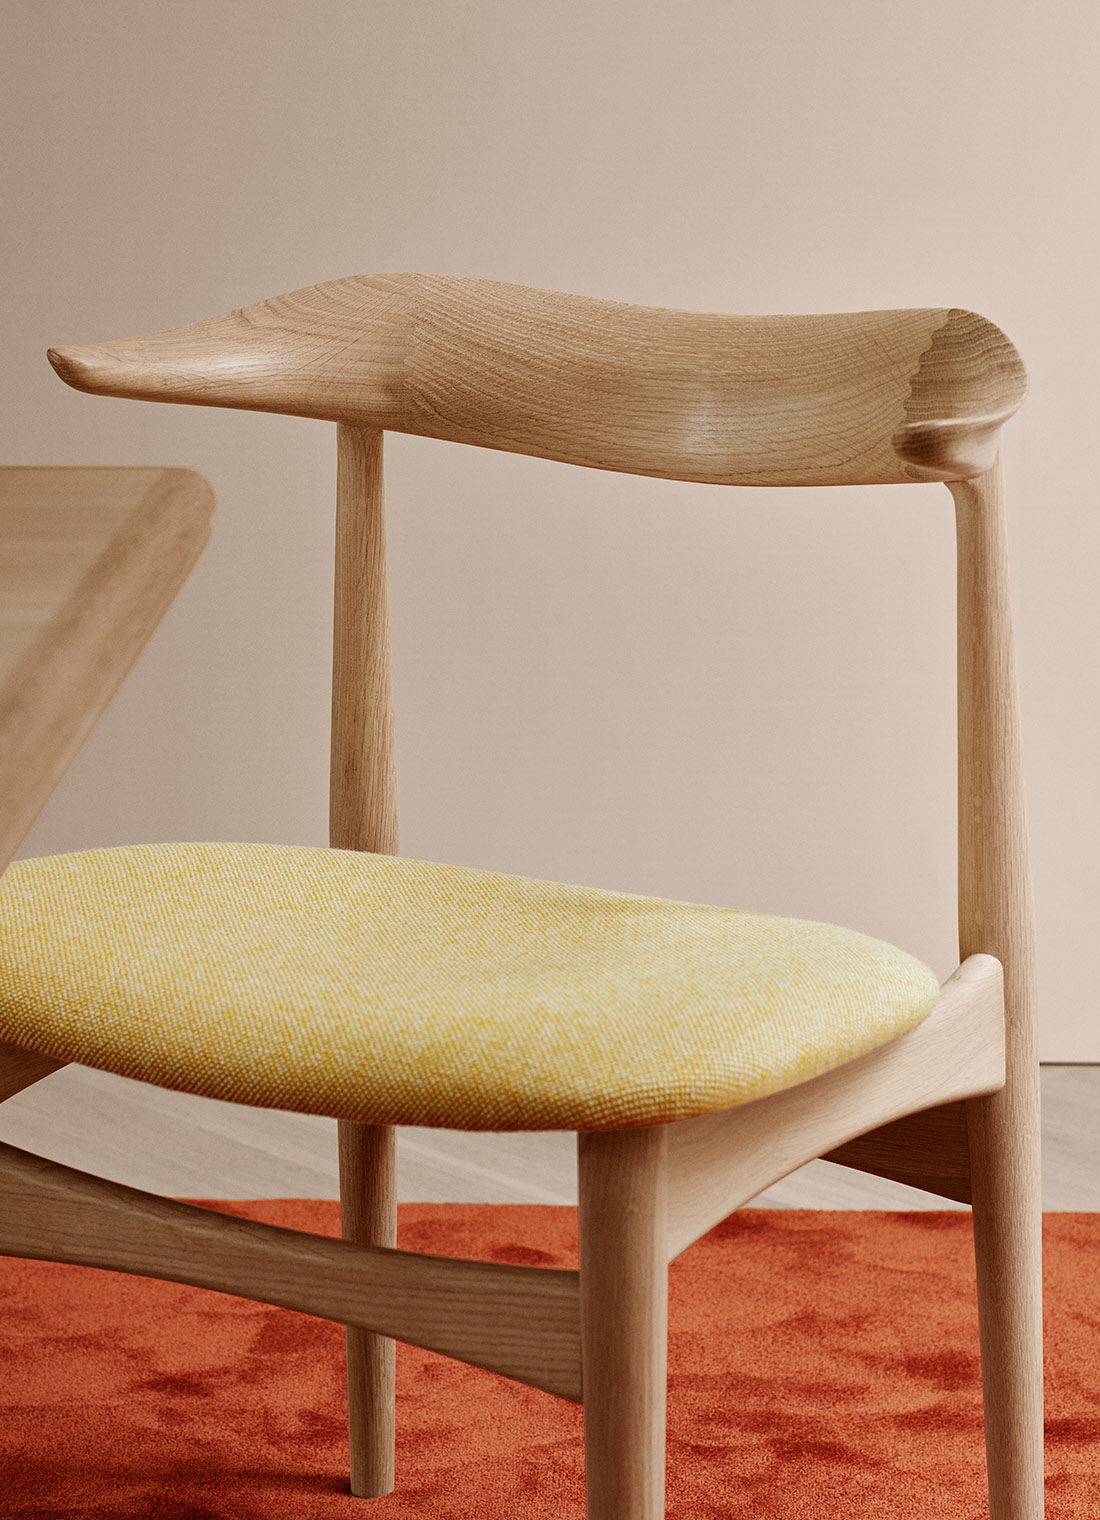 Cow Horn dining chair in oak and yellow textile